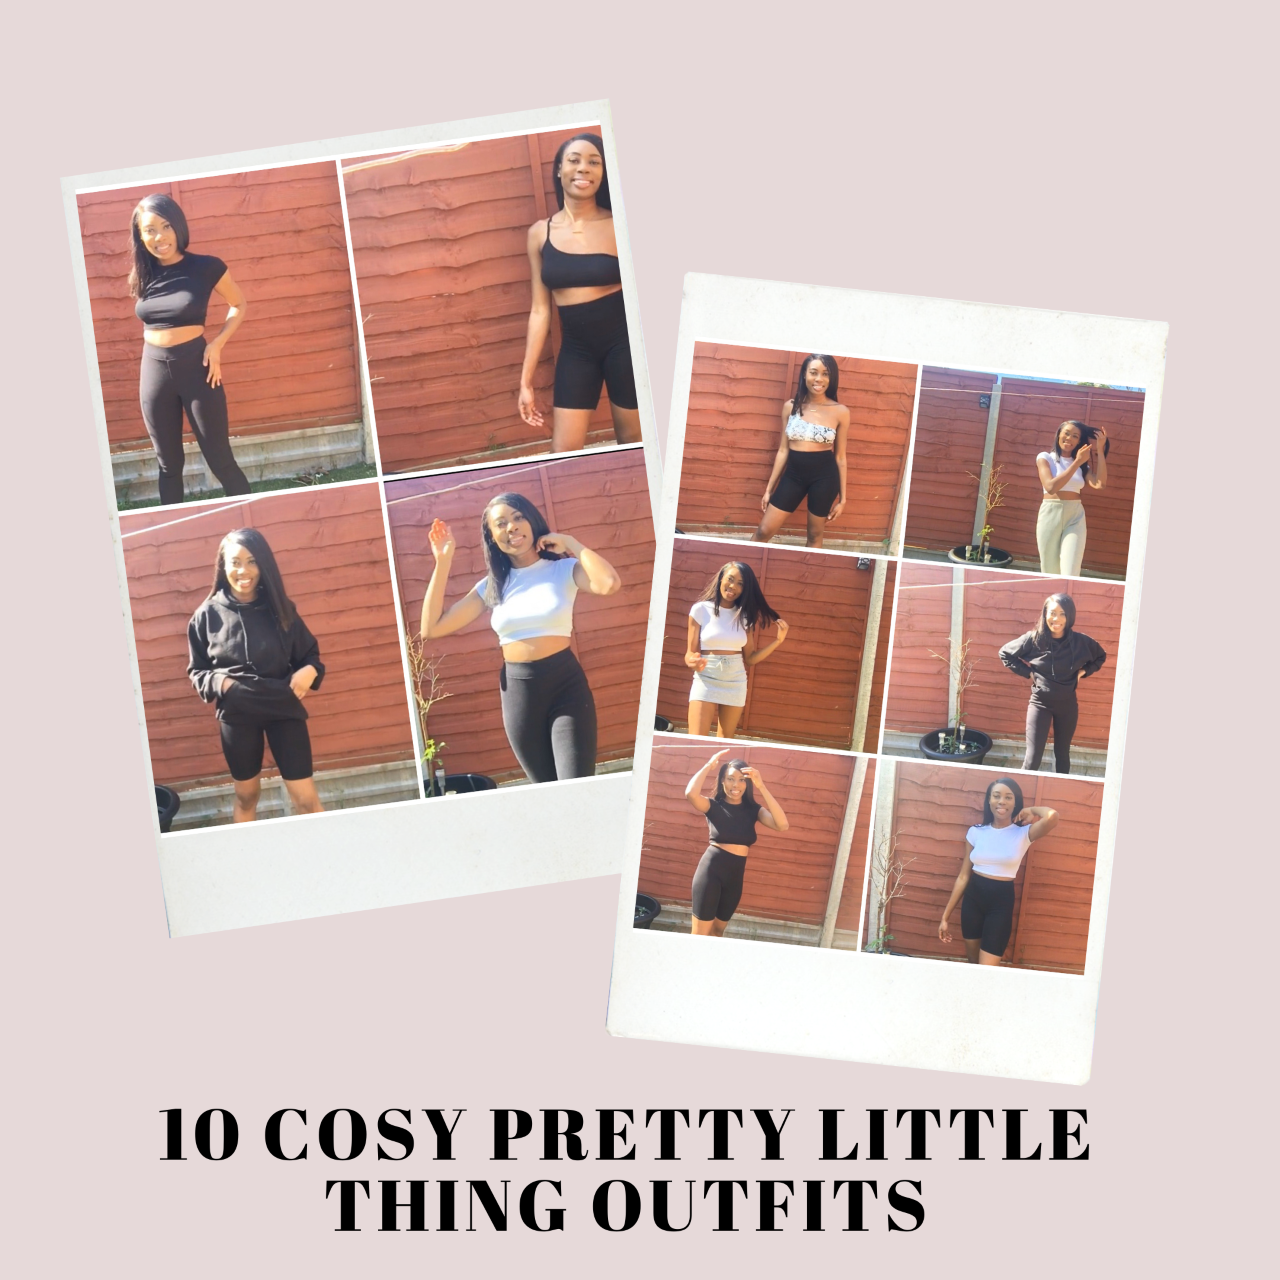 10 cosy Pretty Little Thing outfits